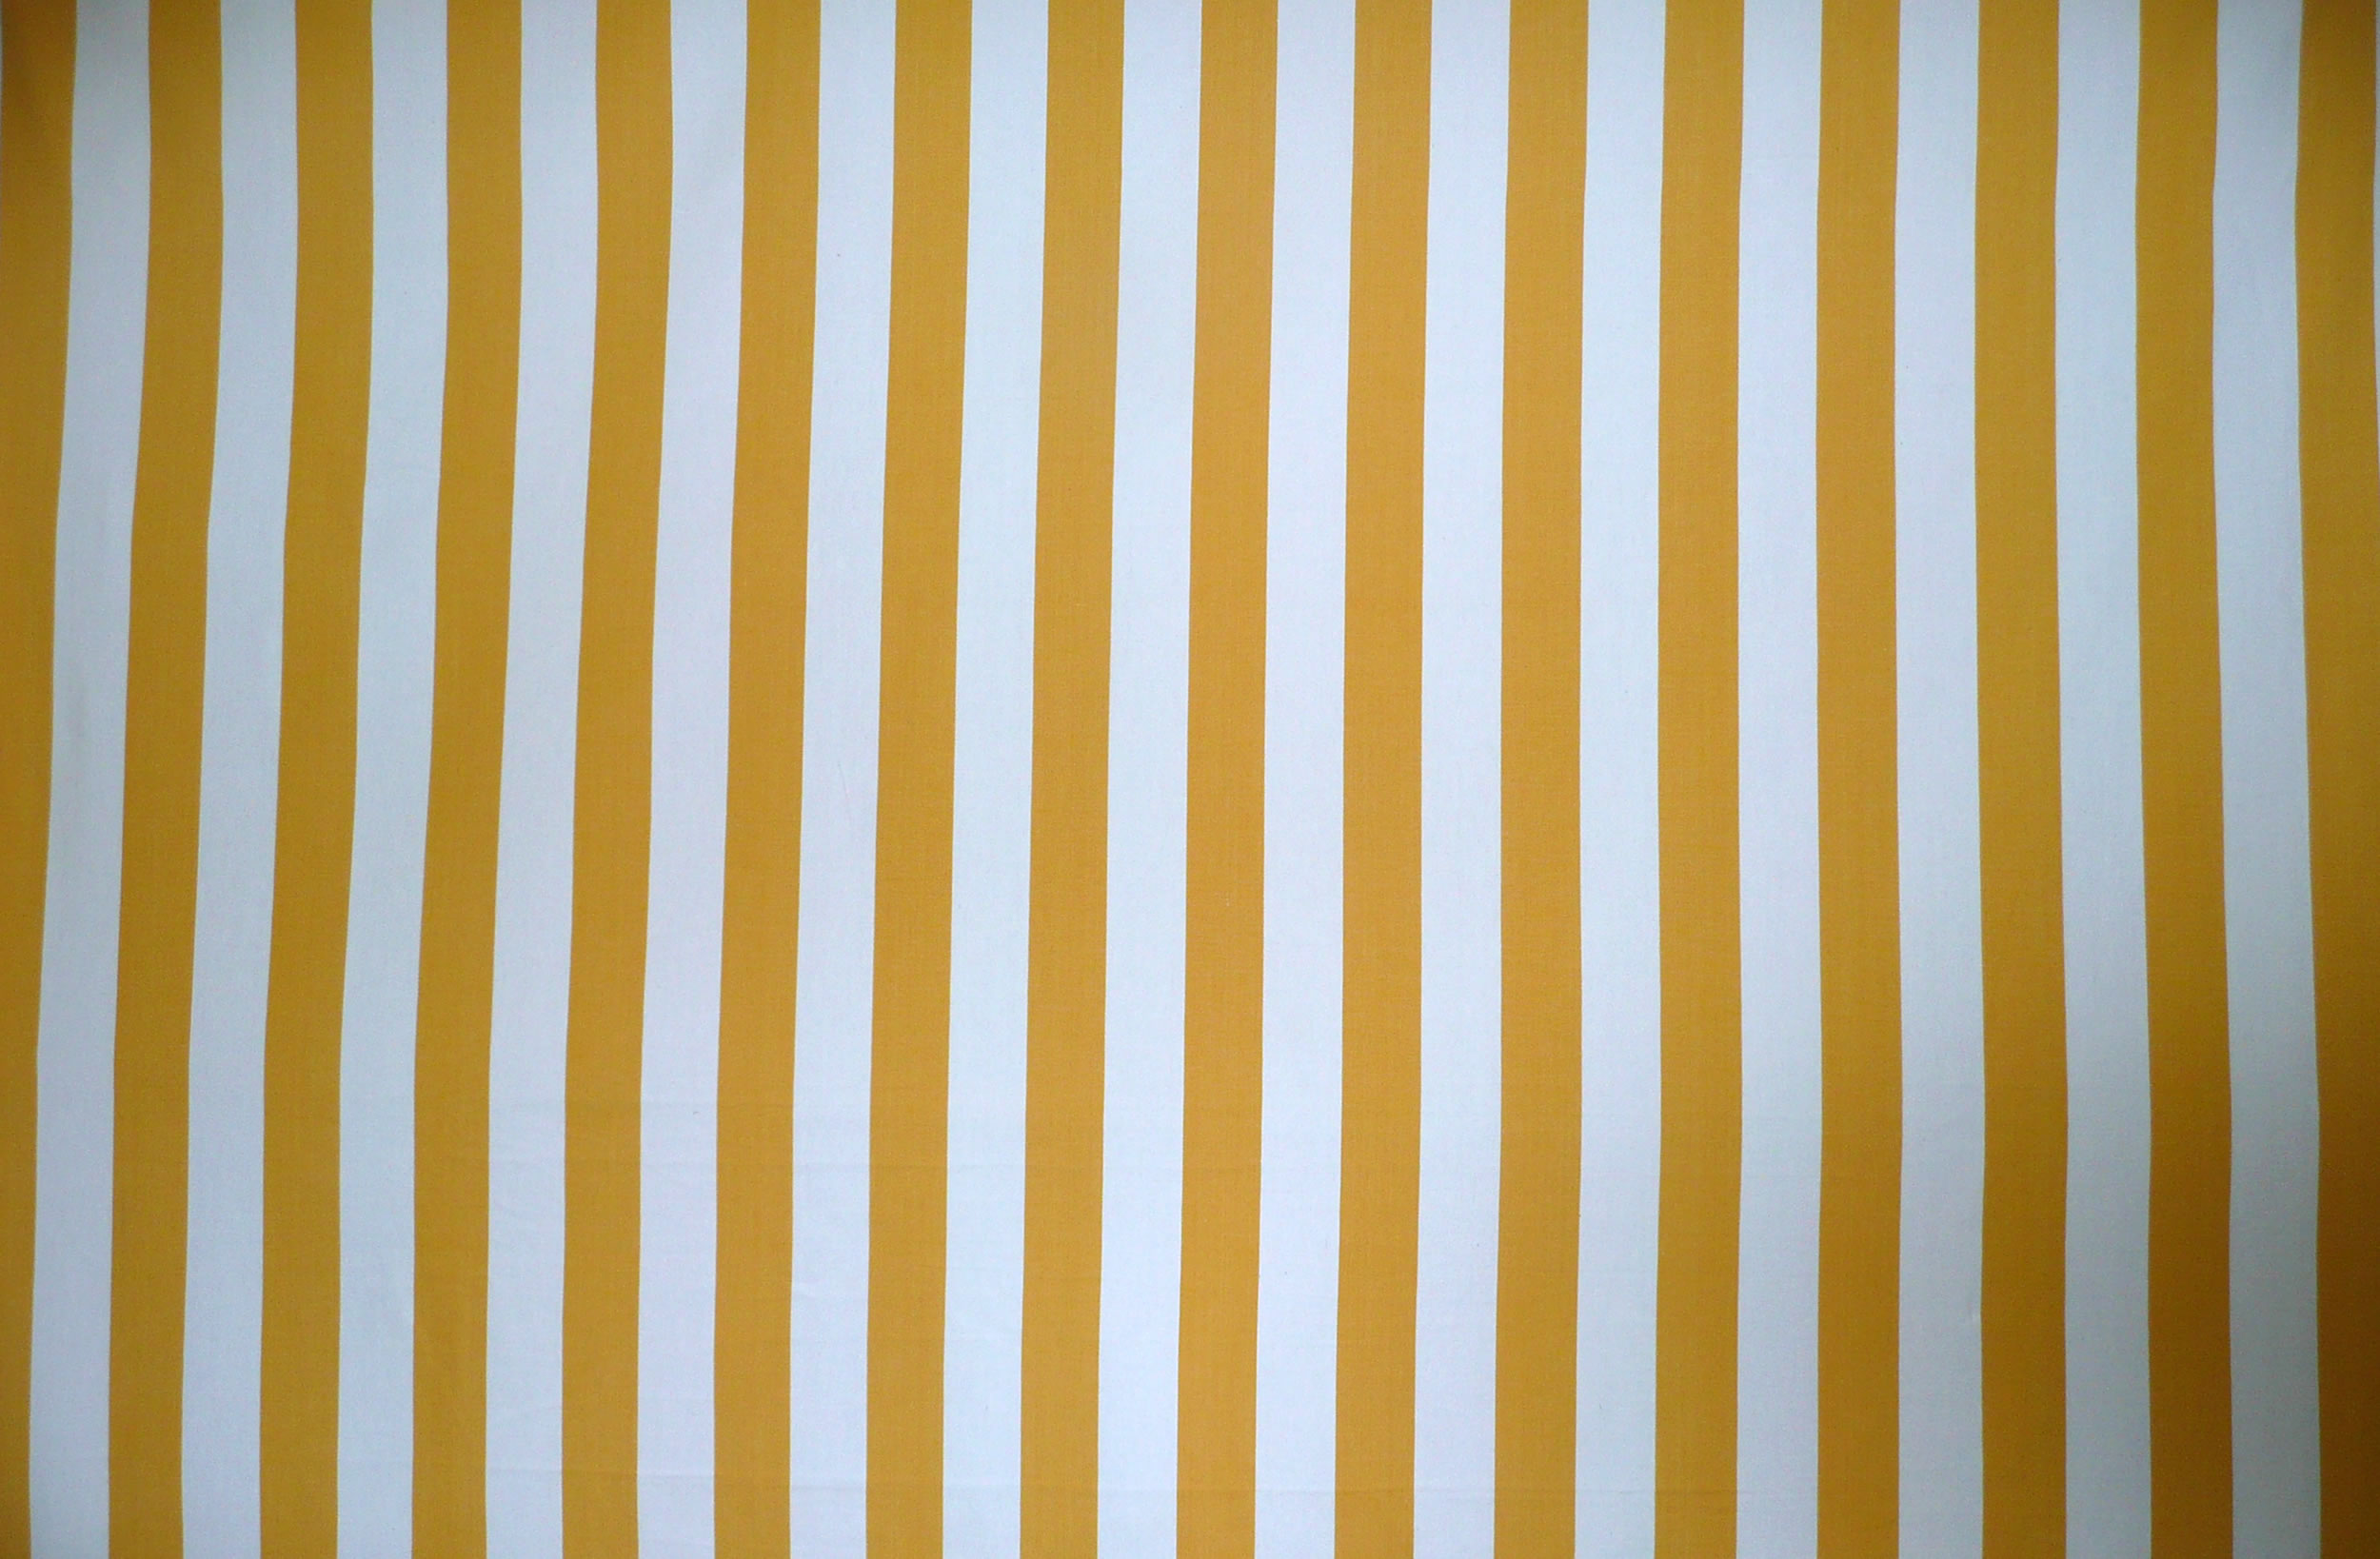 Yellow And White Striped Curtain Material